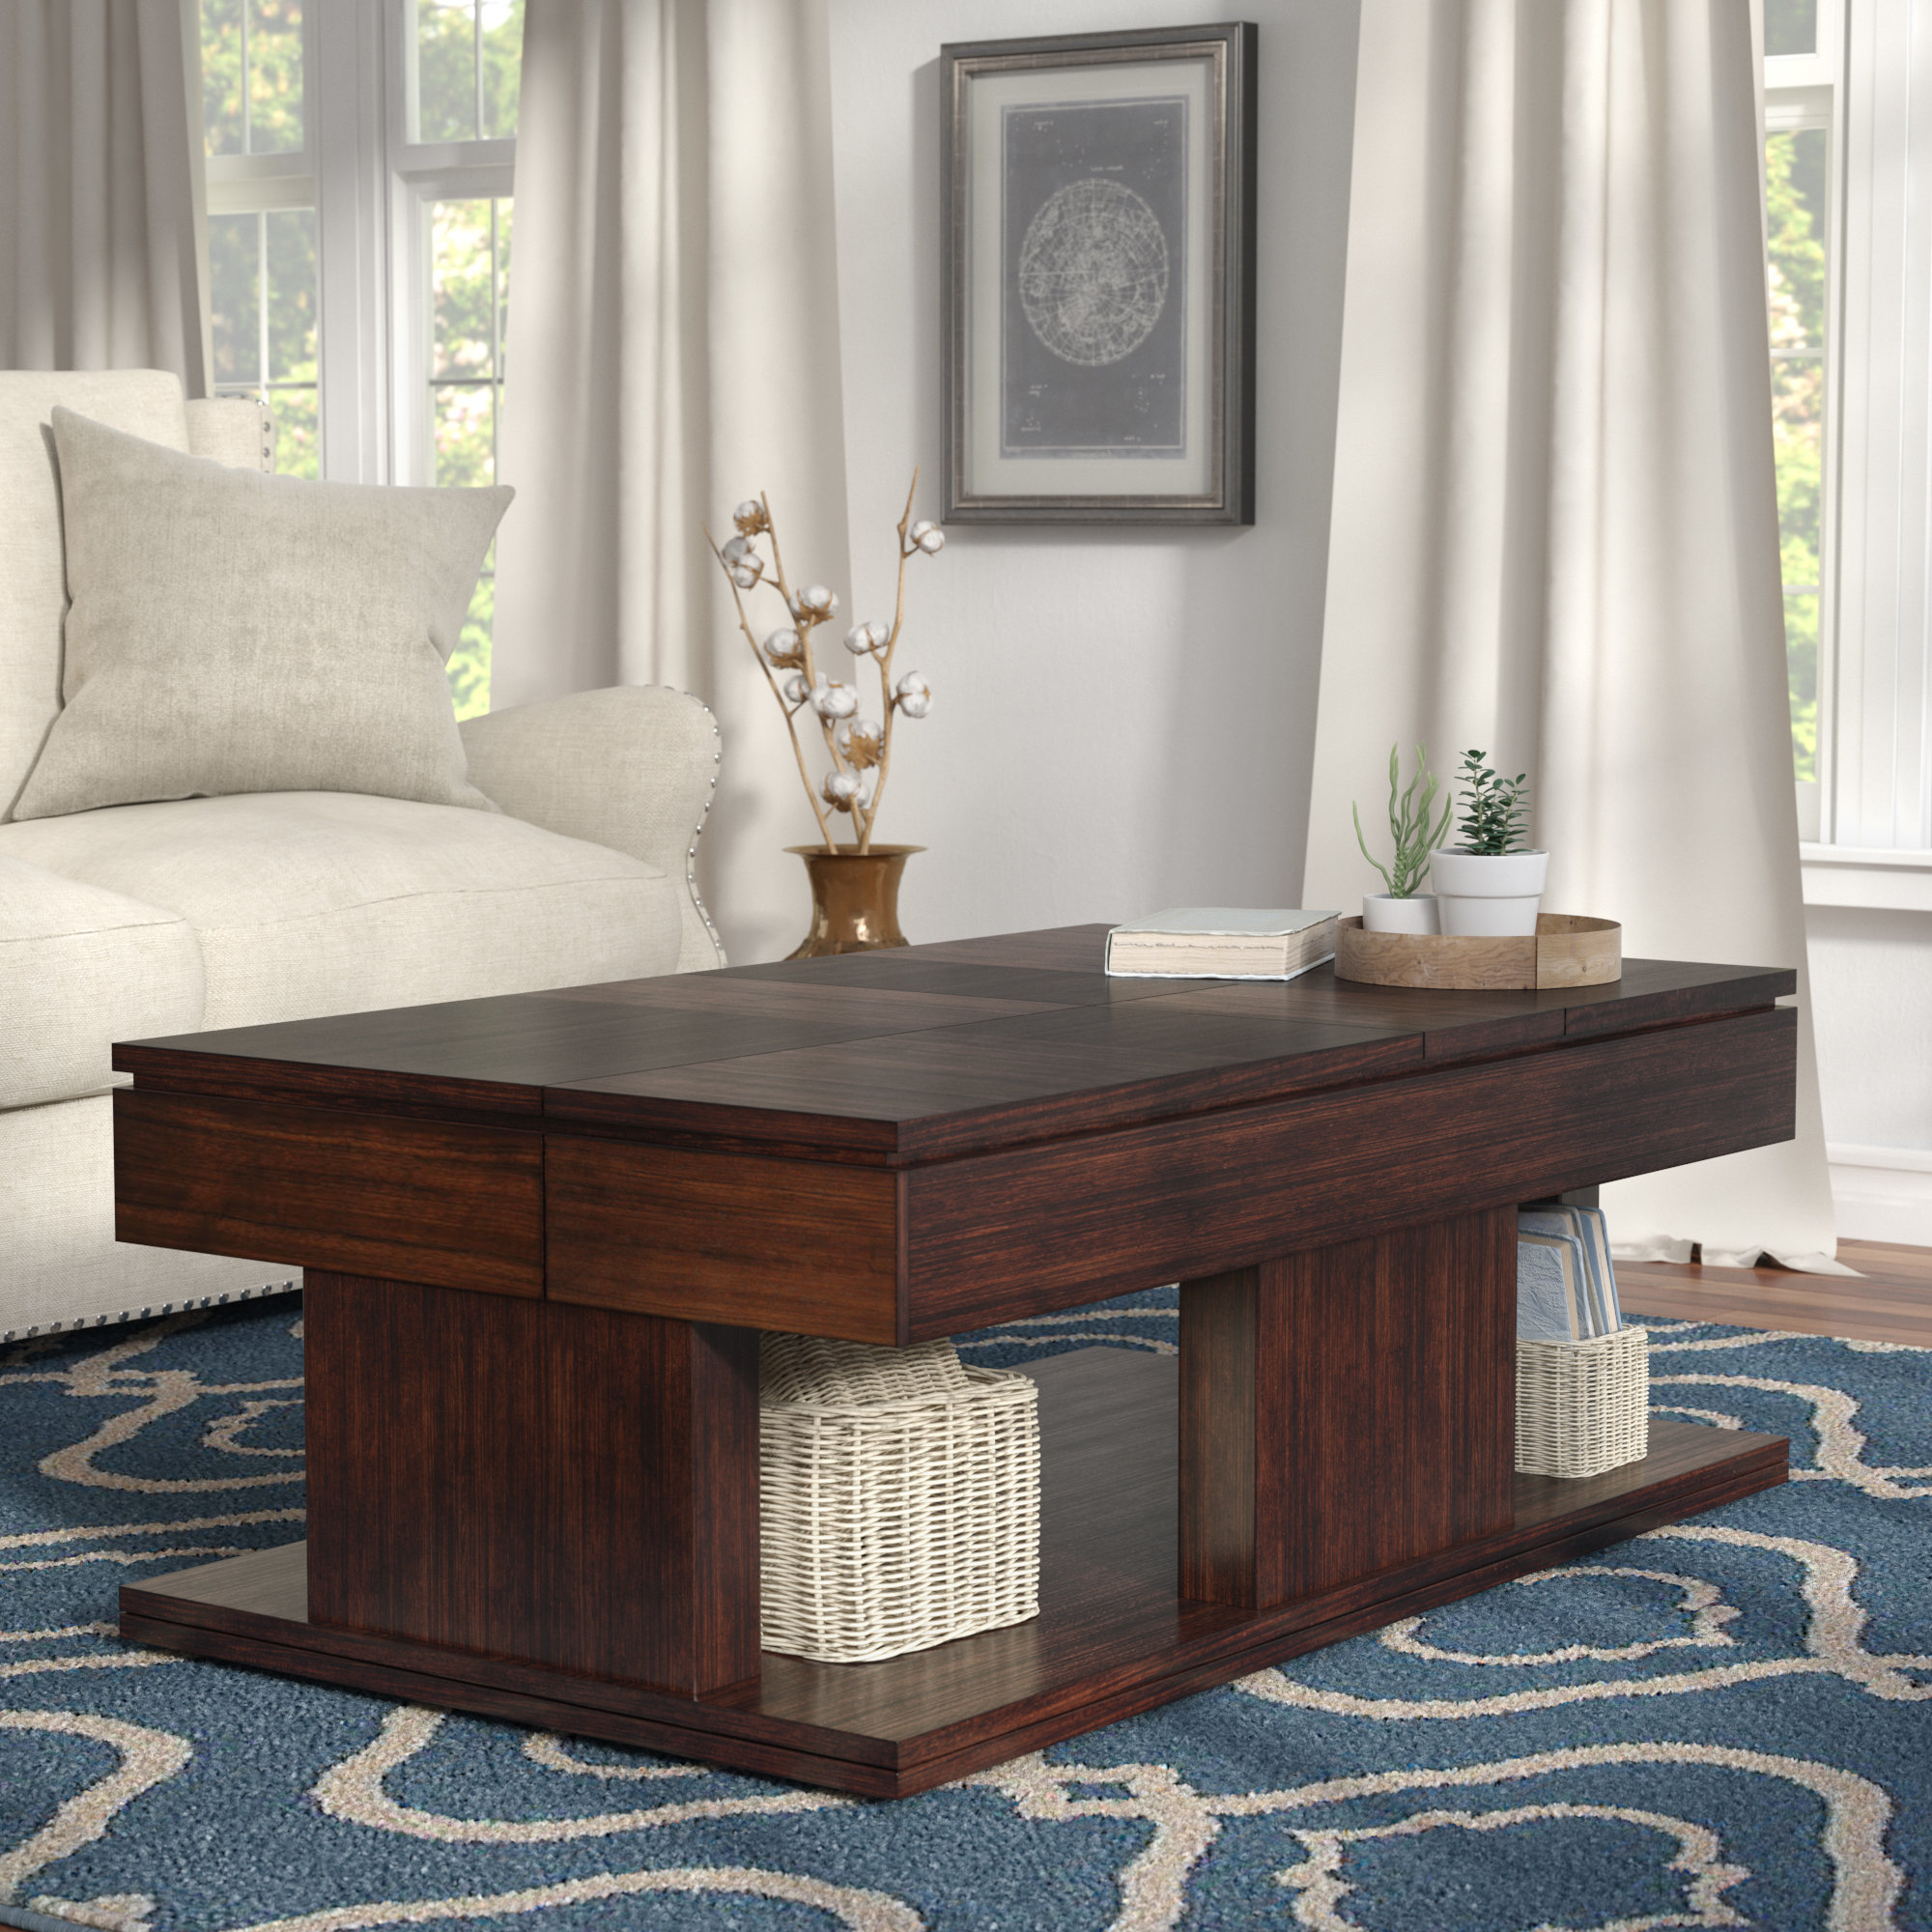 Darby Home Co Janene Lift Top Coffee Table (Gallery 18 of 20)